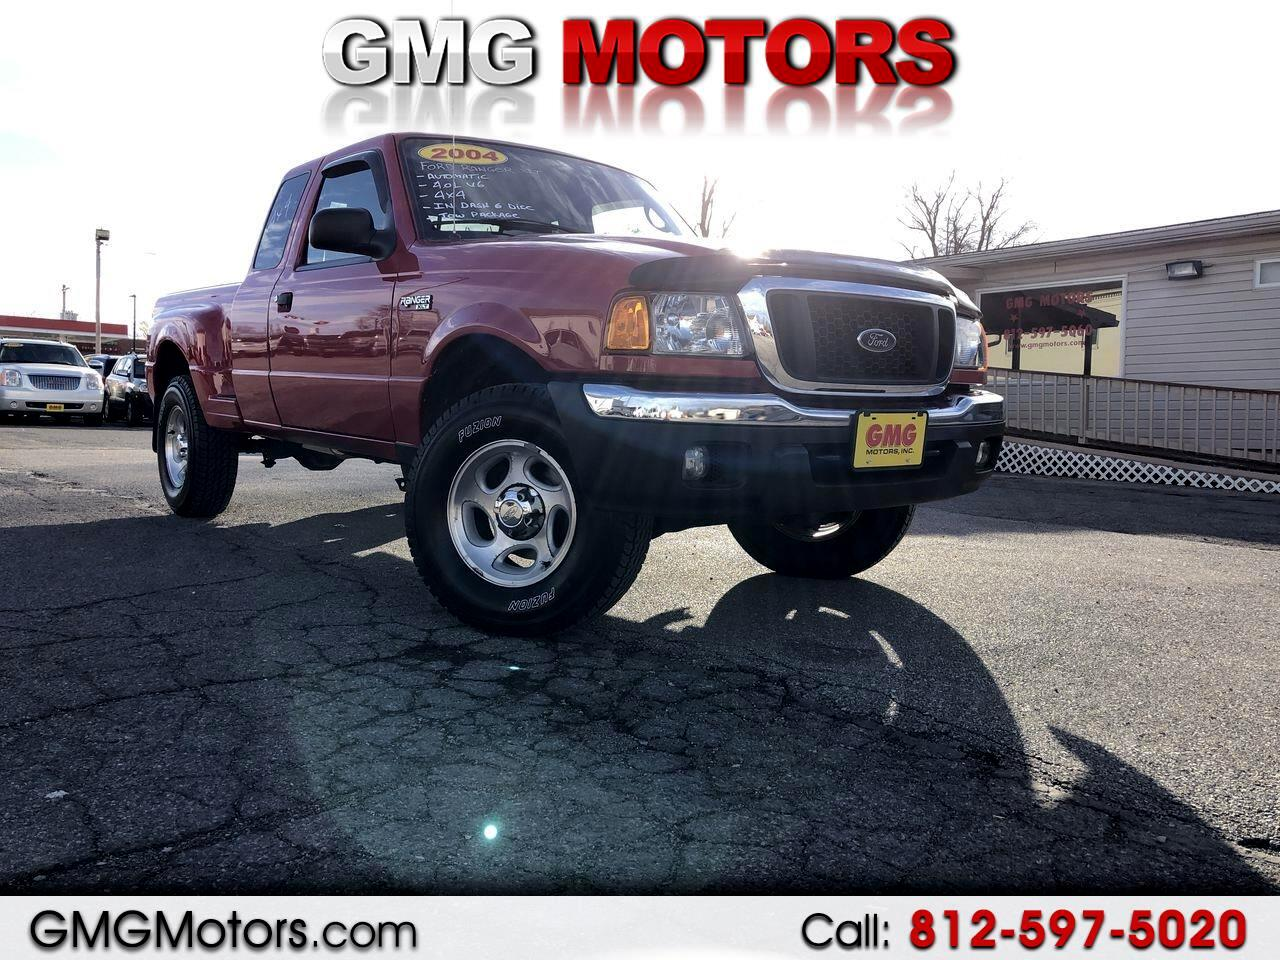 Ford Ranger 2dr Supercab 4.0L XL Fleet 4WD 2004